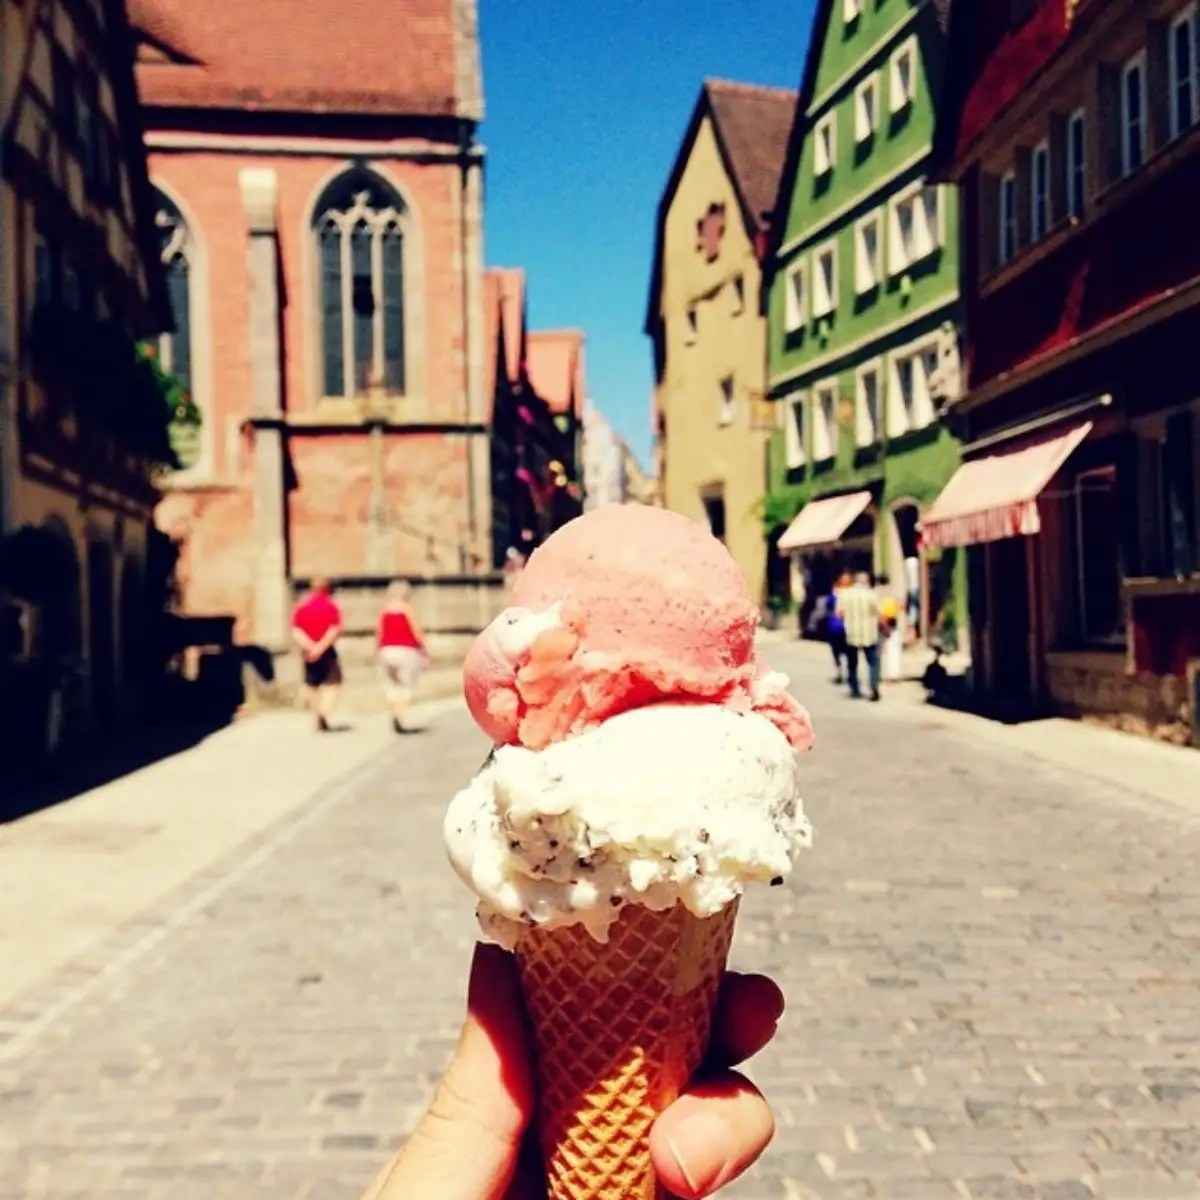 Gelato at Rothenburg Ob de Tauber, a charming small medieval town in Germany.